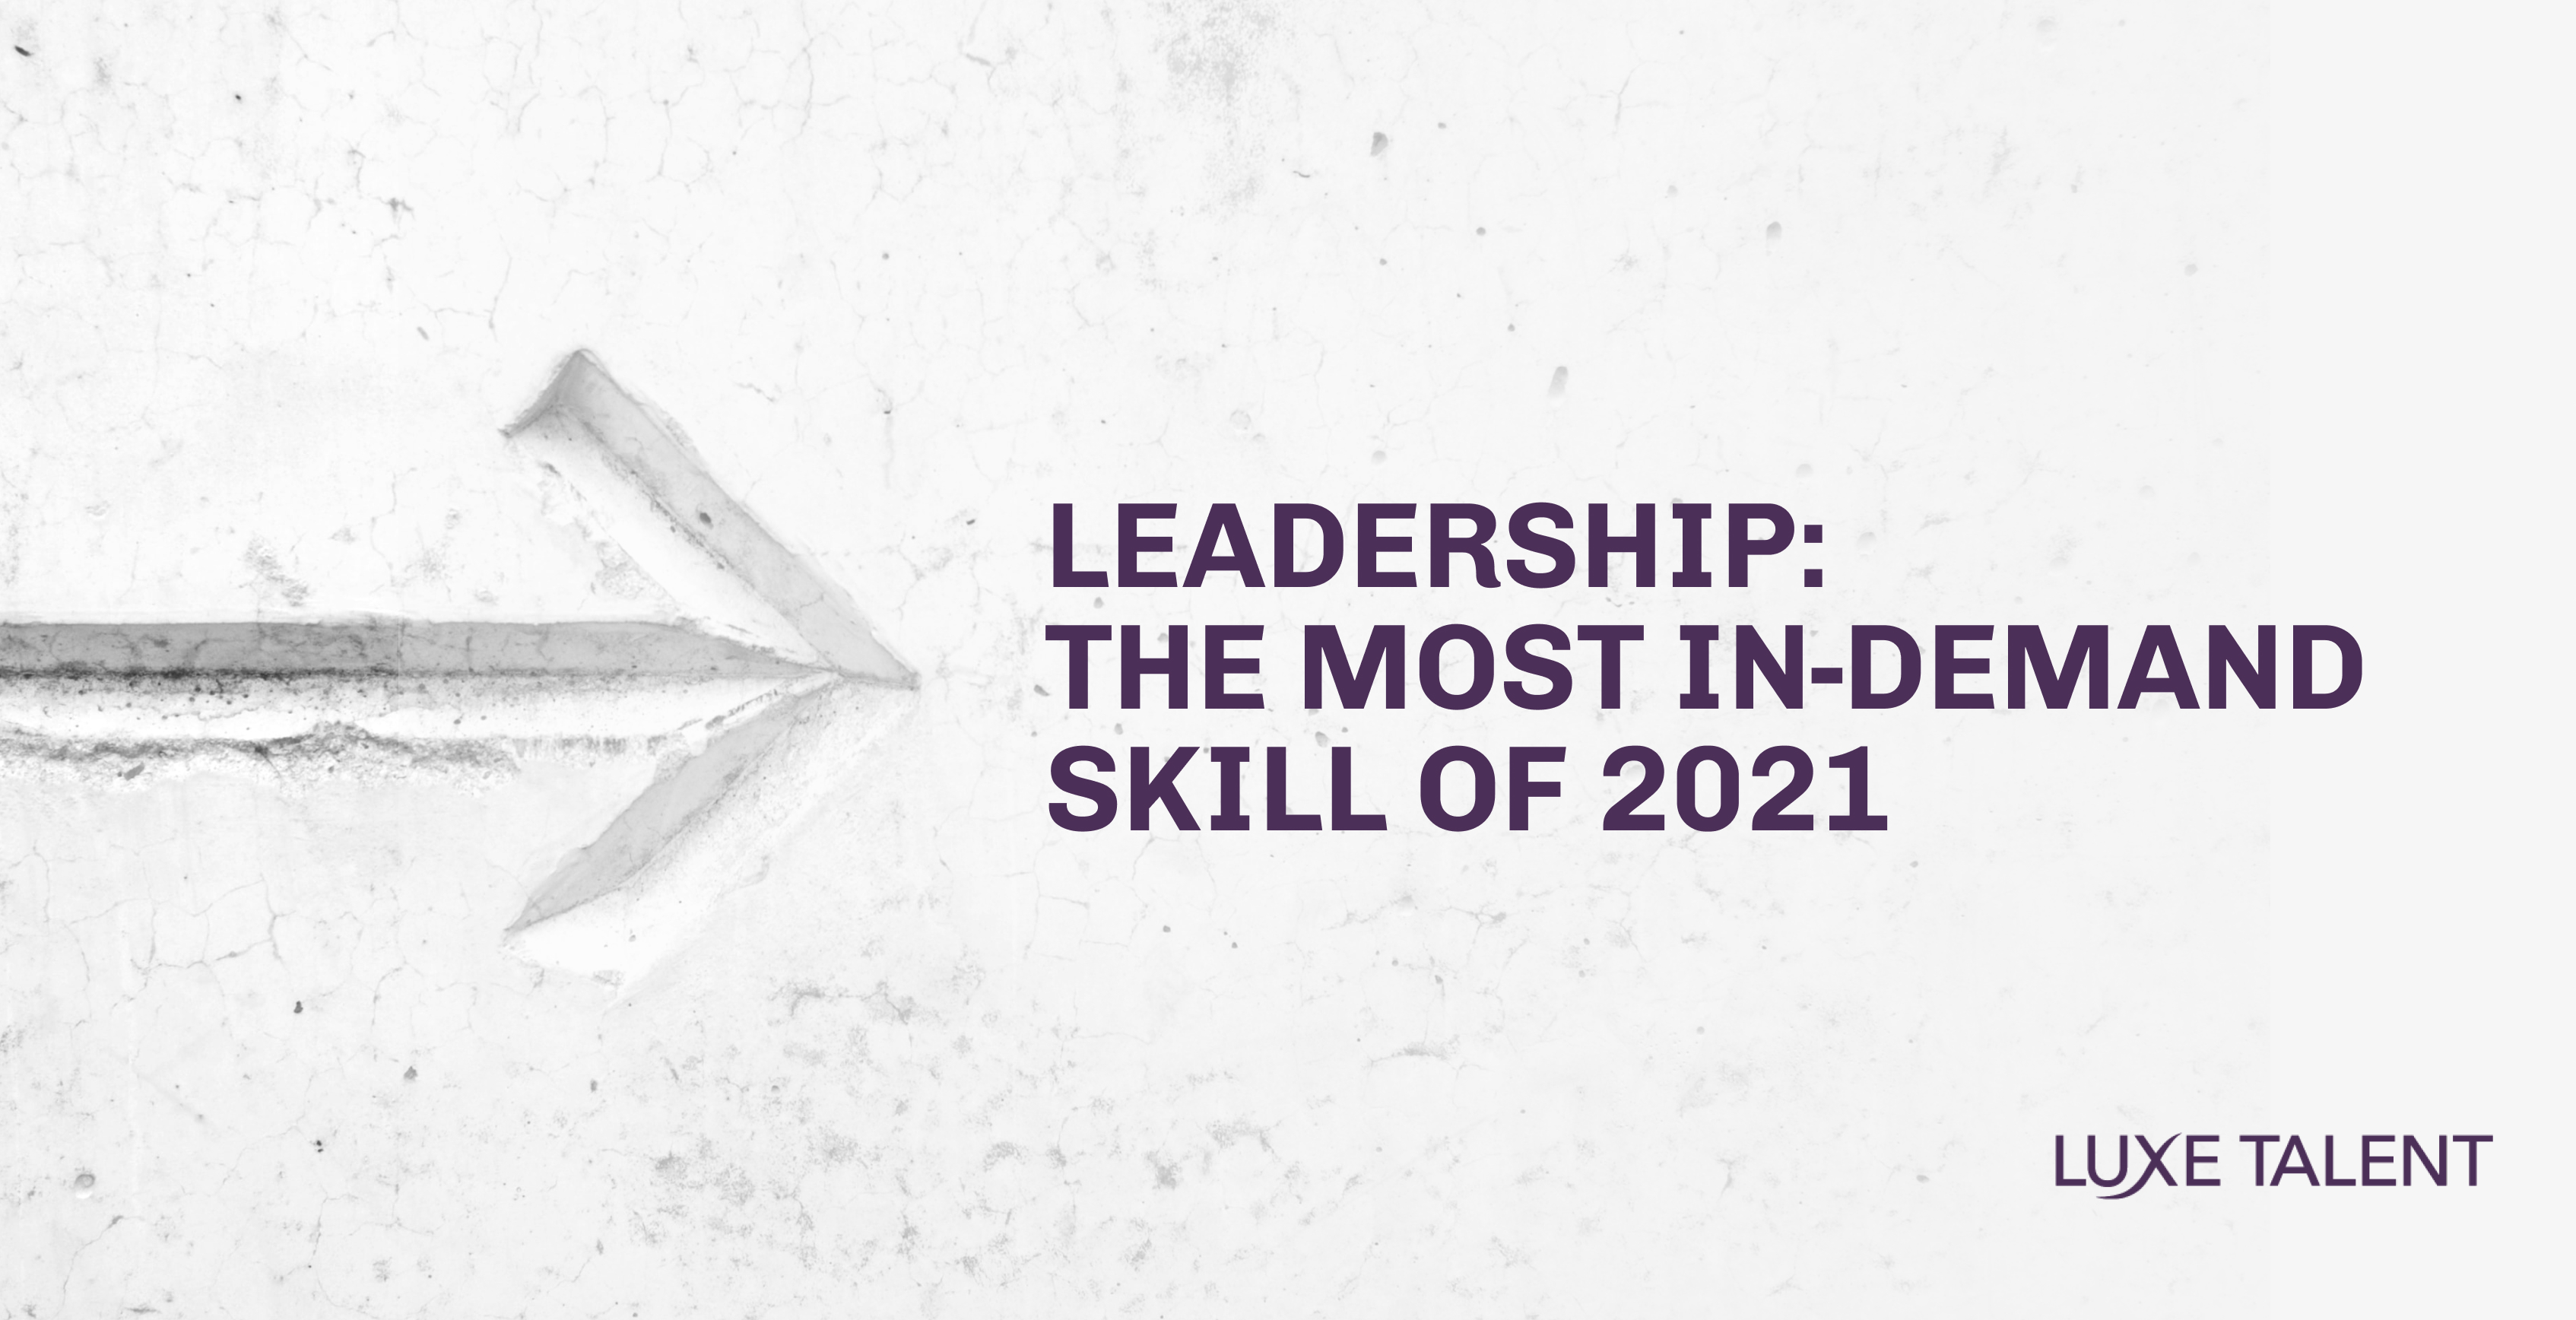 Leadership: The most in-demand skill of 2021. By Luxe Talent